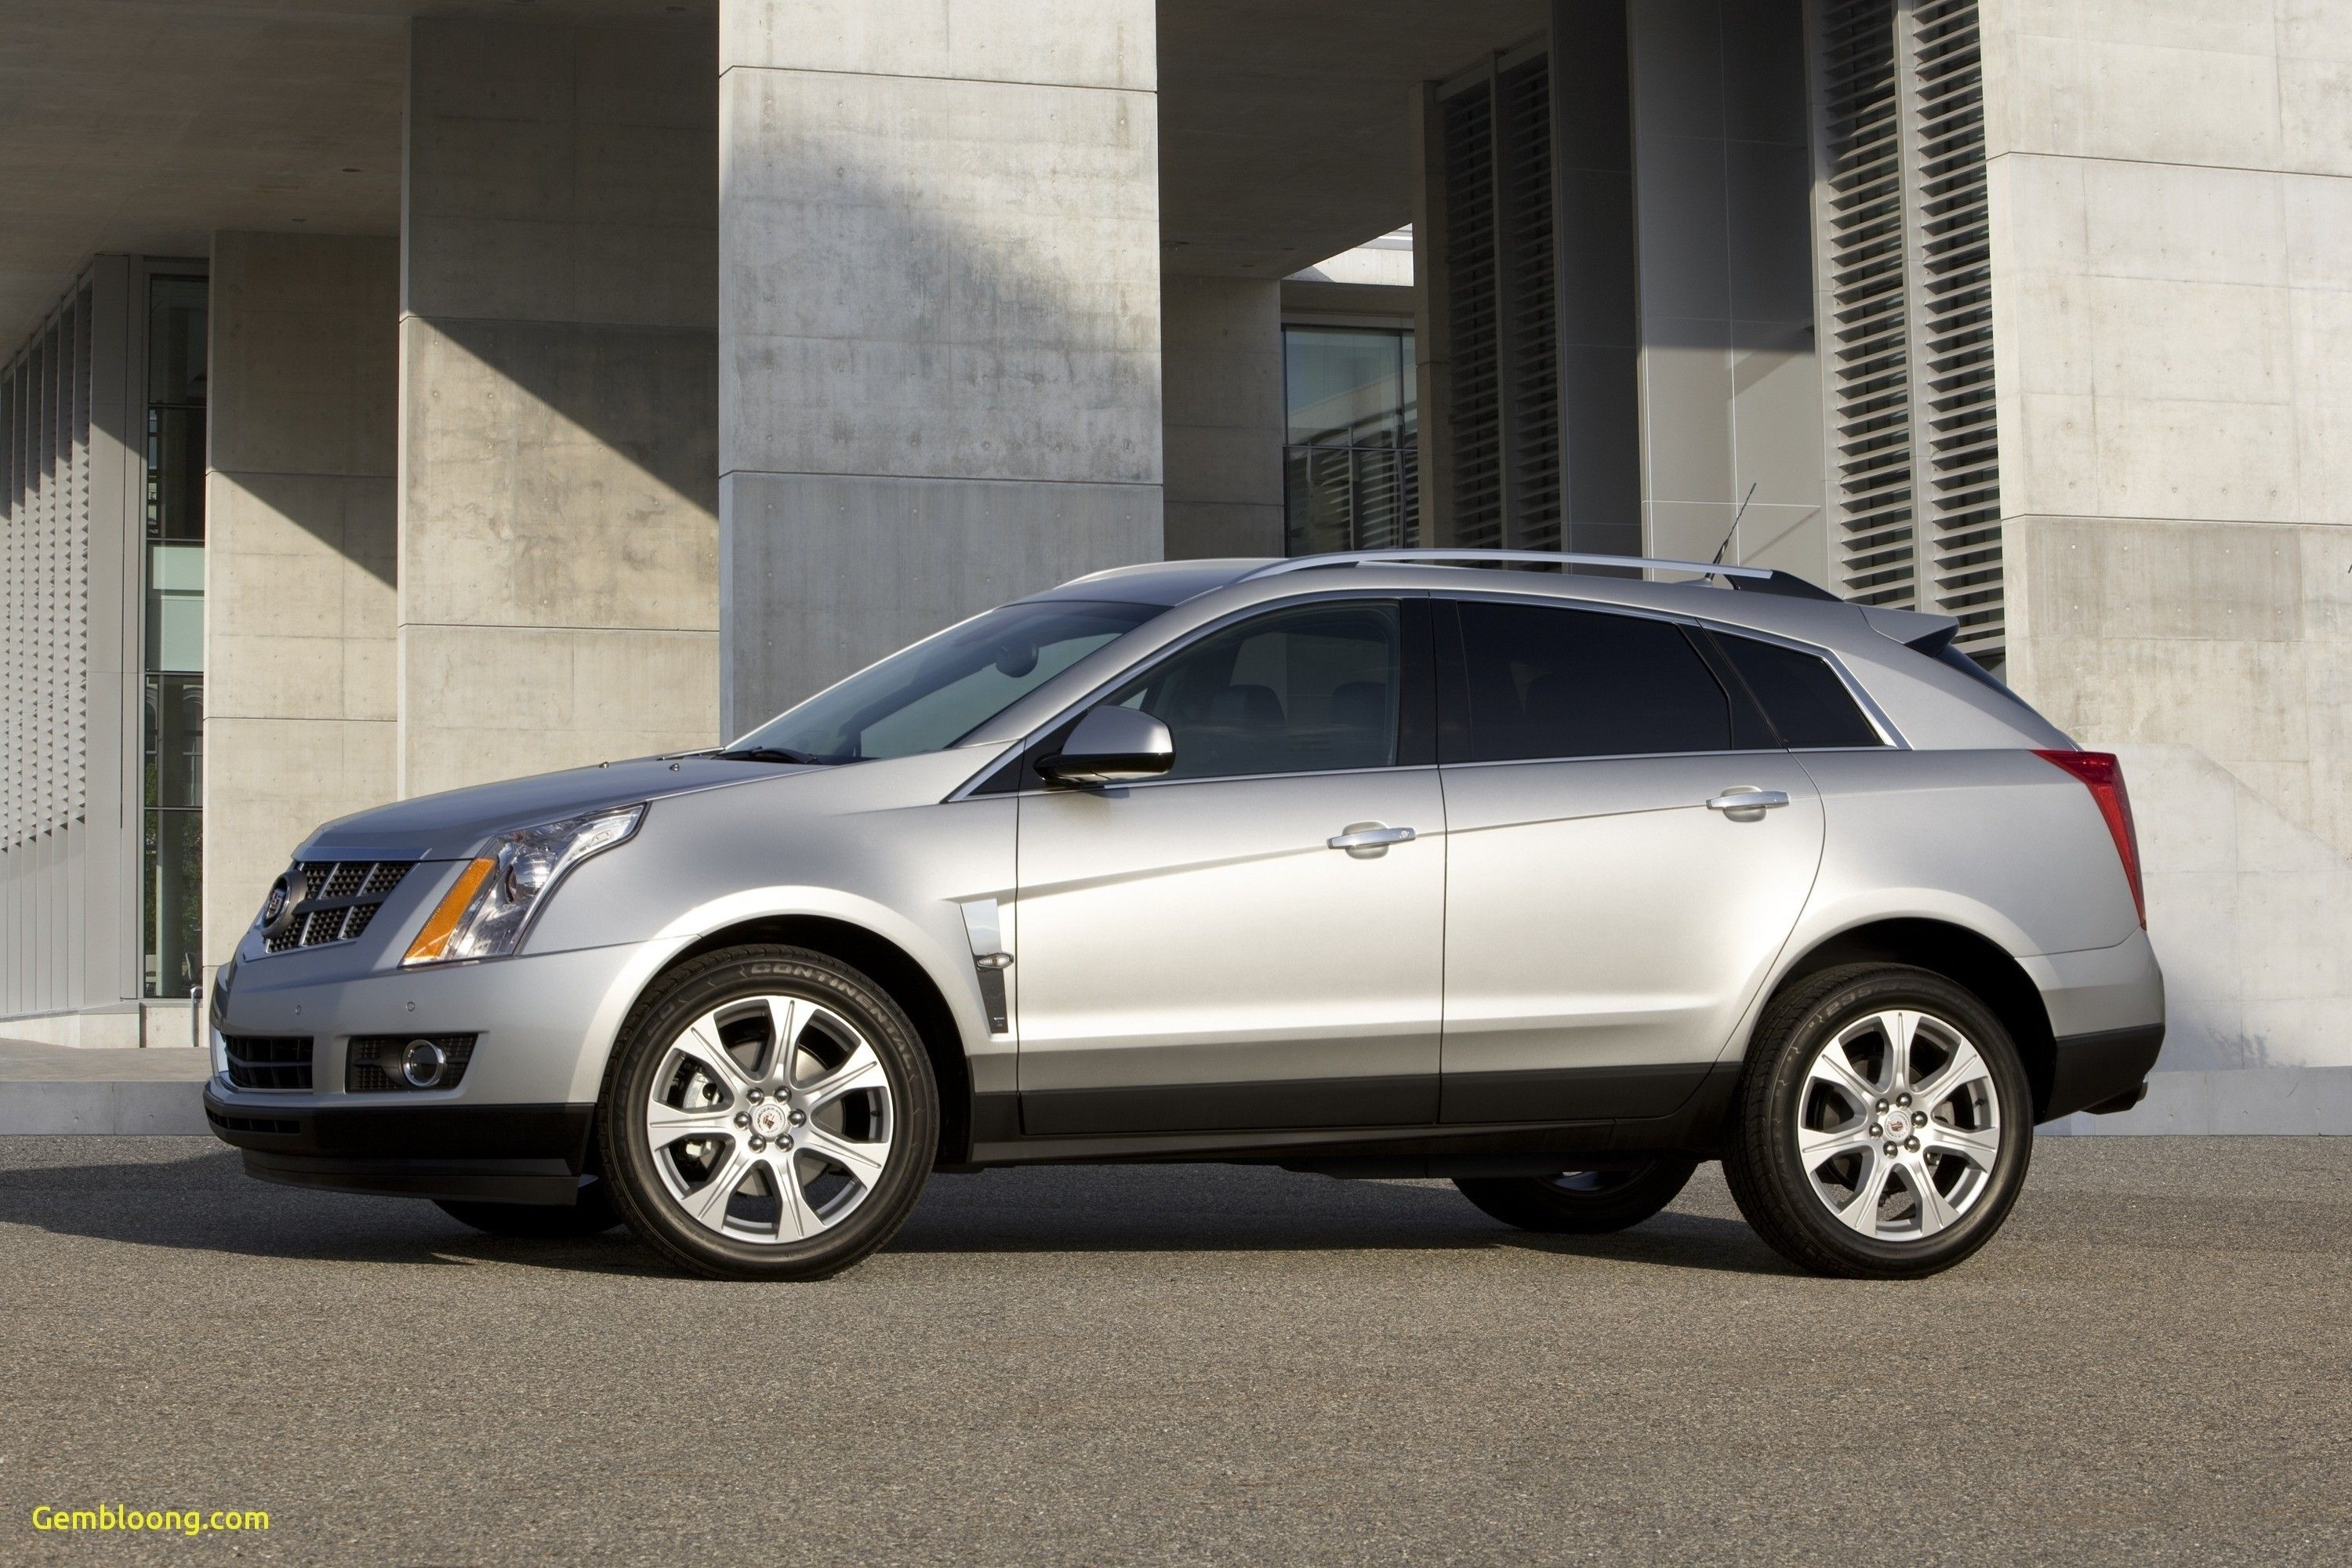 2019 Cadillac Srx Release Date Price And Review All Car Reviews